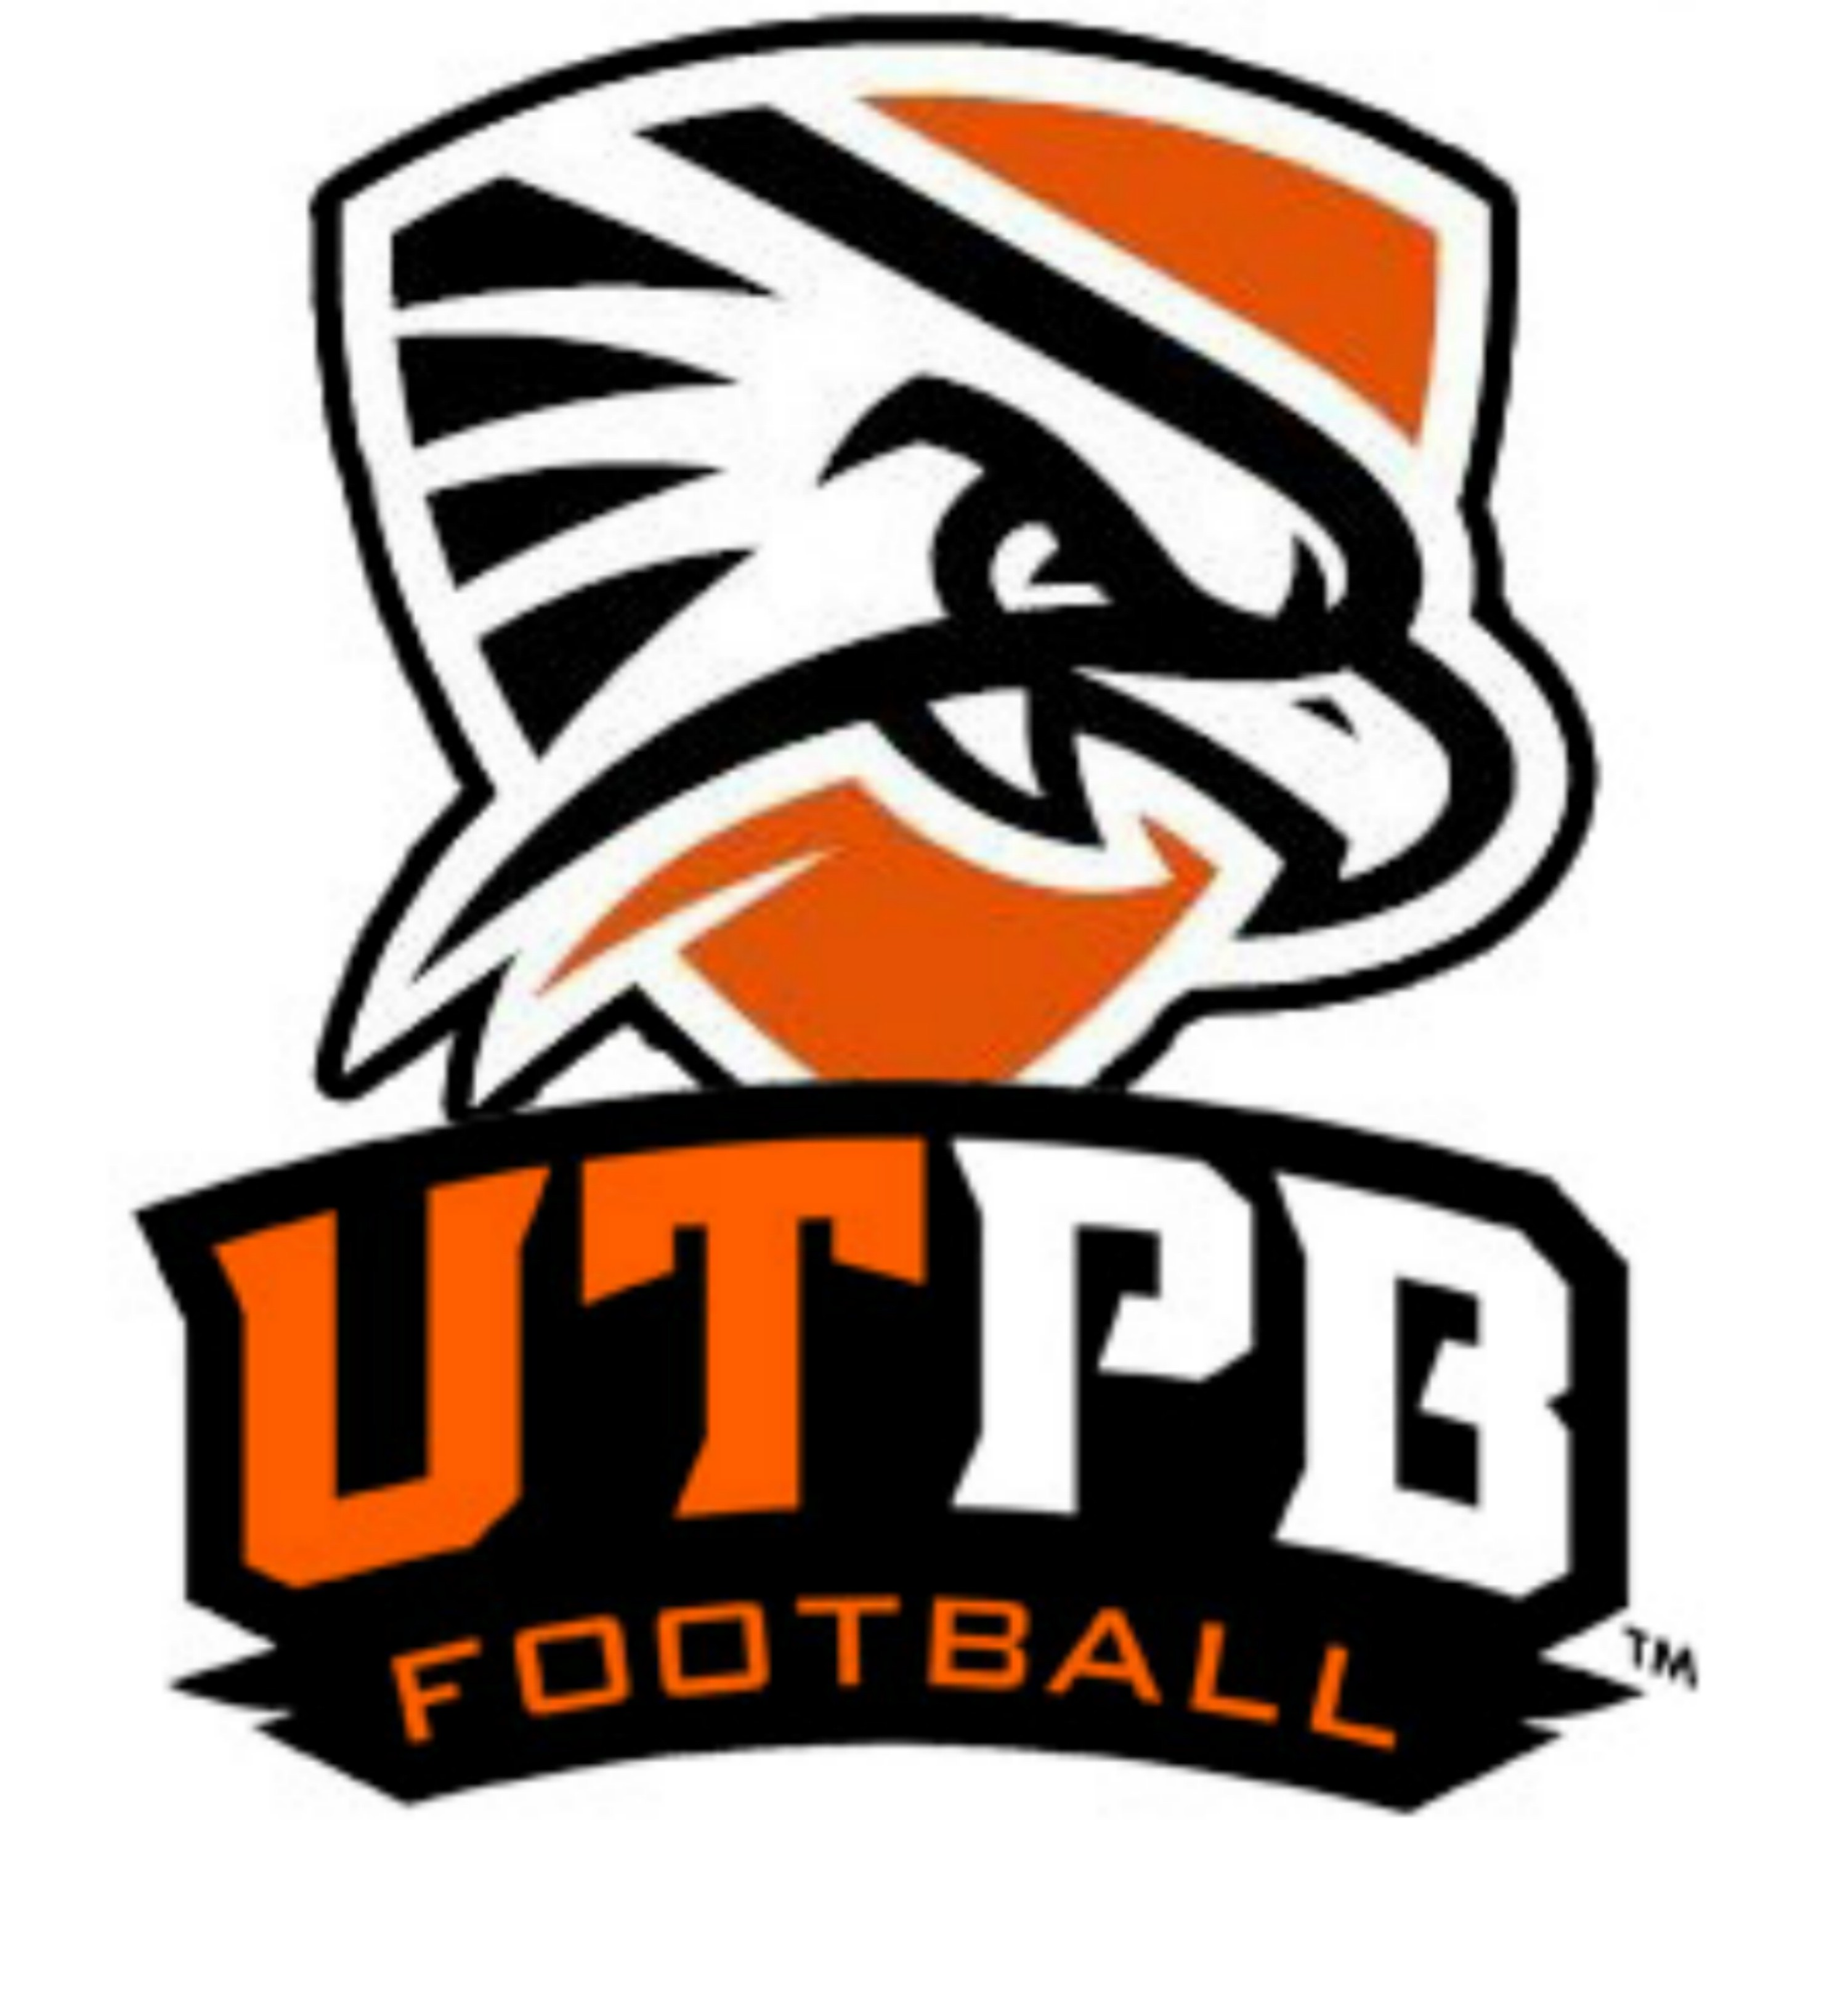 Image for RATLIFF UTPB FALCON FOOTBALL 2018 4 GAME SEASON